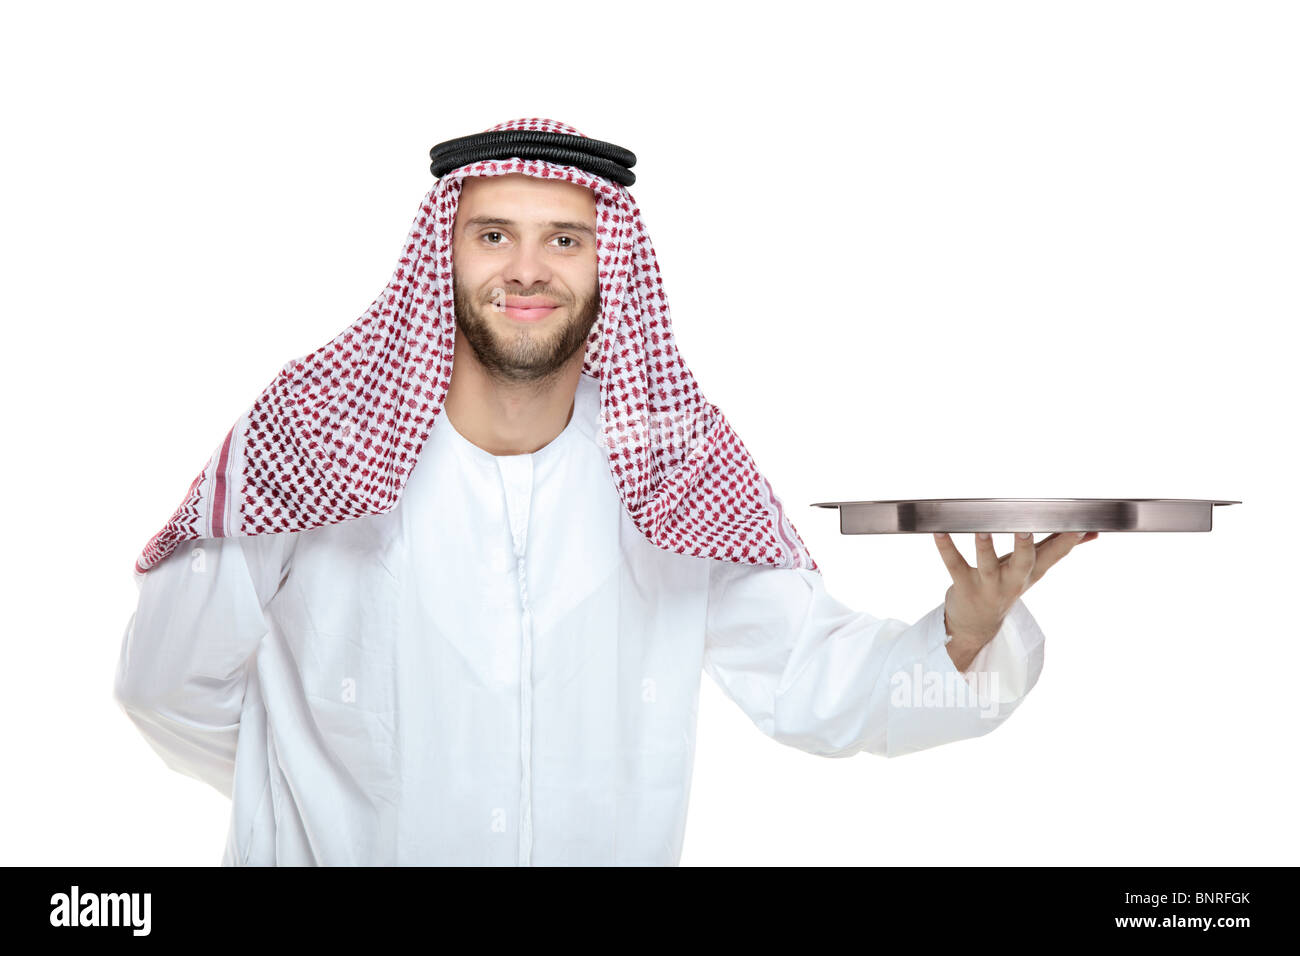 An arab person holding a tray Stock Photo